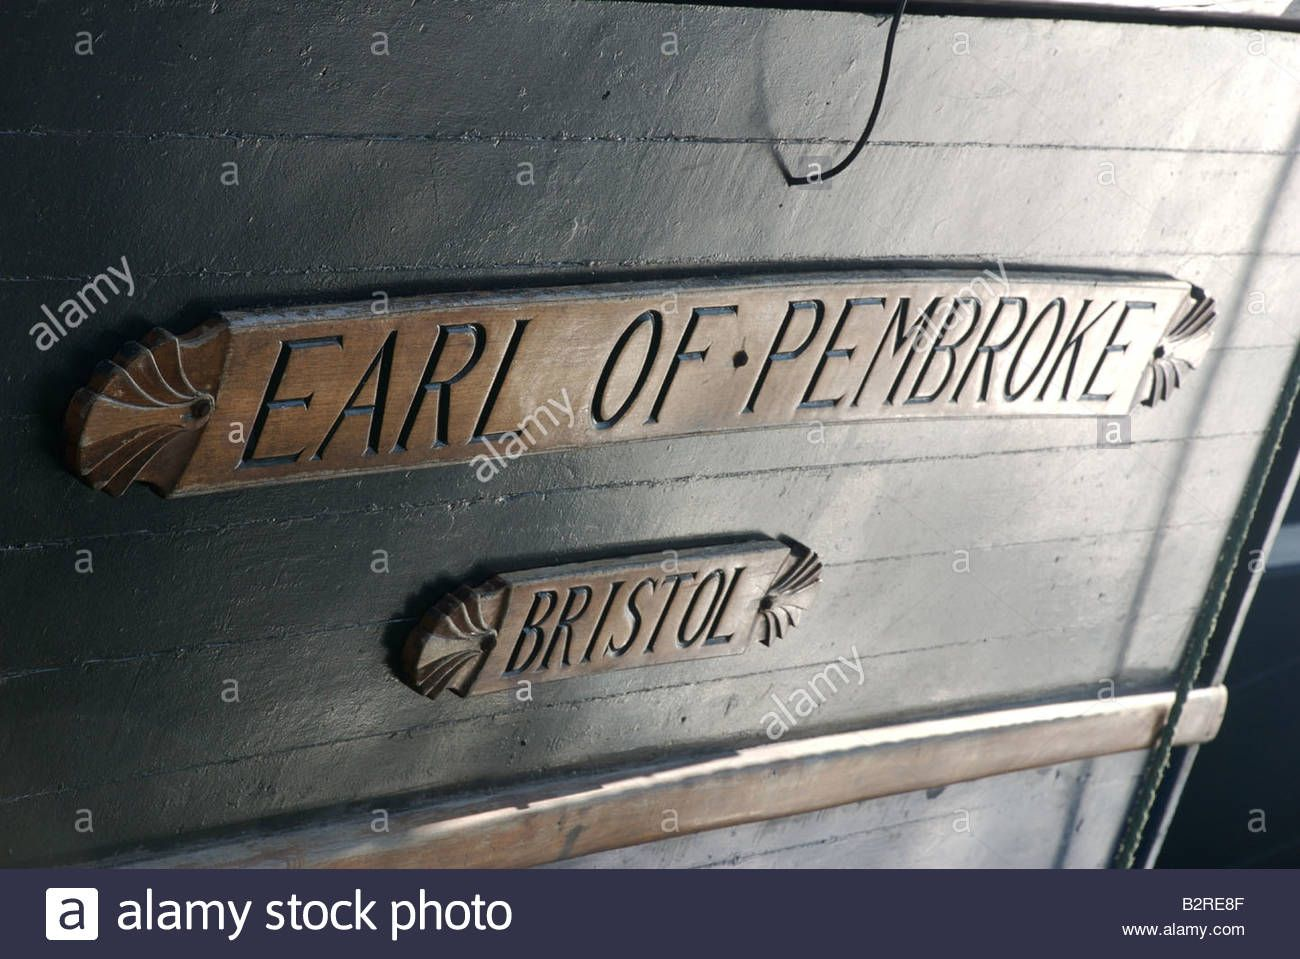 Image result for tall ship name plaque | 7SC Pirate Ship | Ship